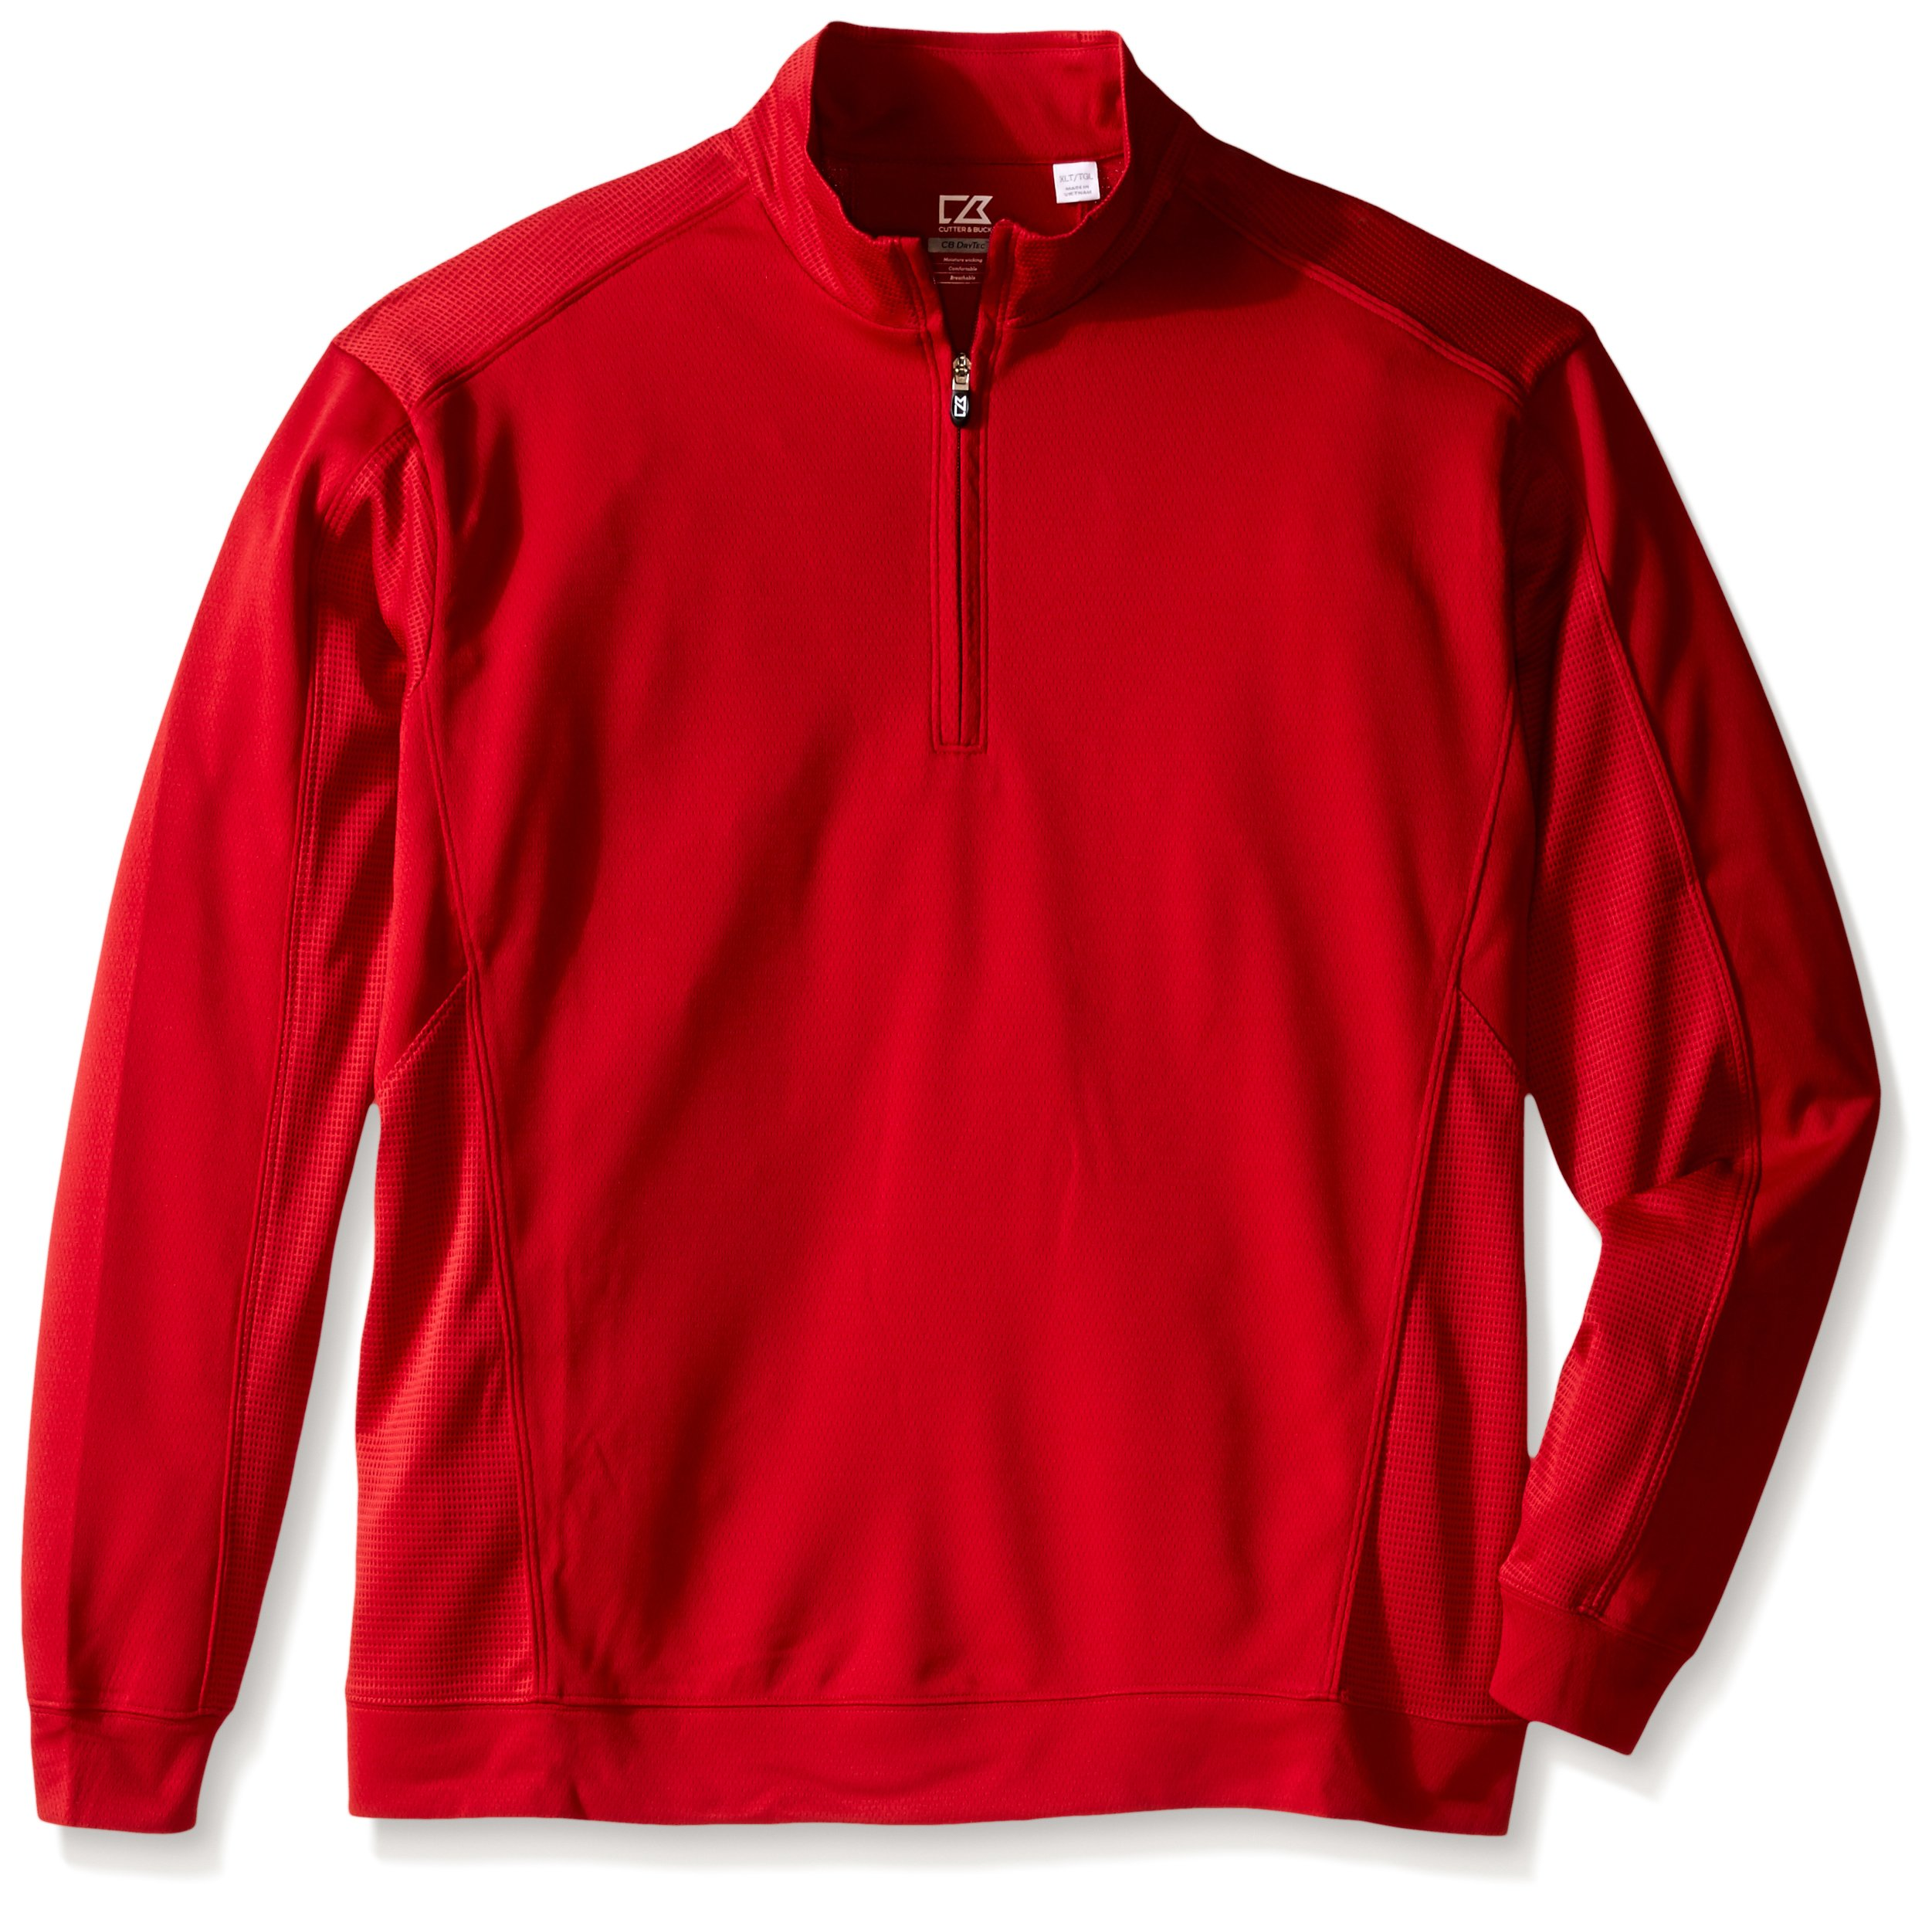 Cutter & Buck Men's Big-Tall Drytec Edge Half Zip, Cardinal Red X-Large